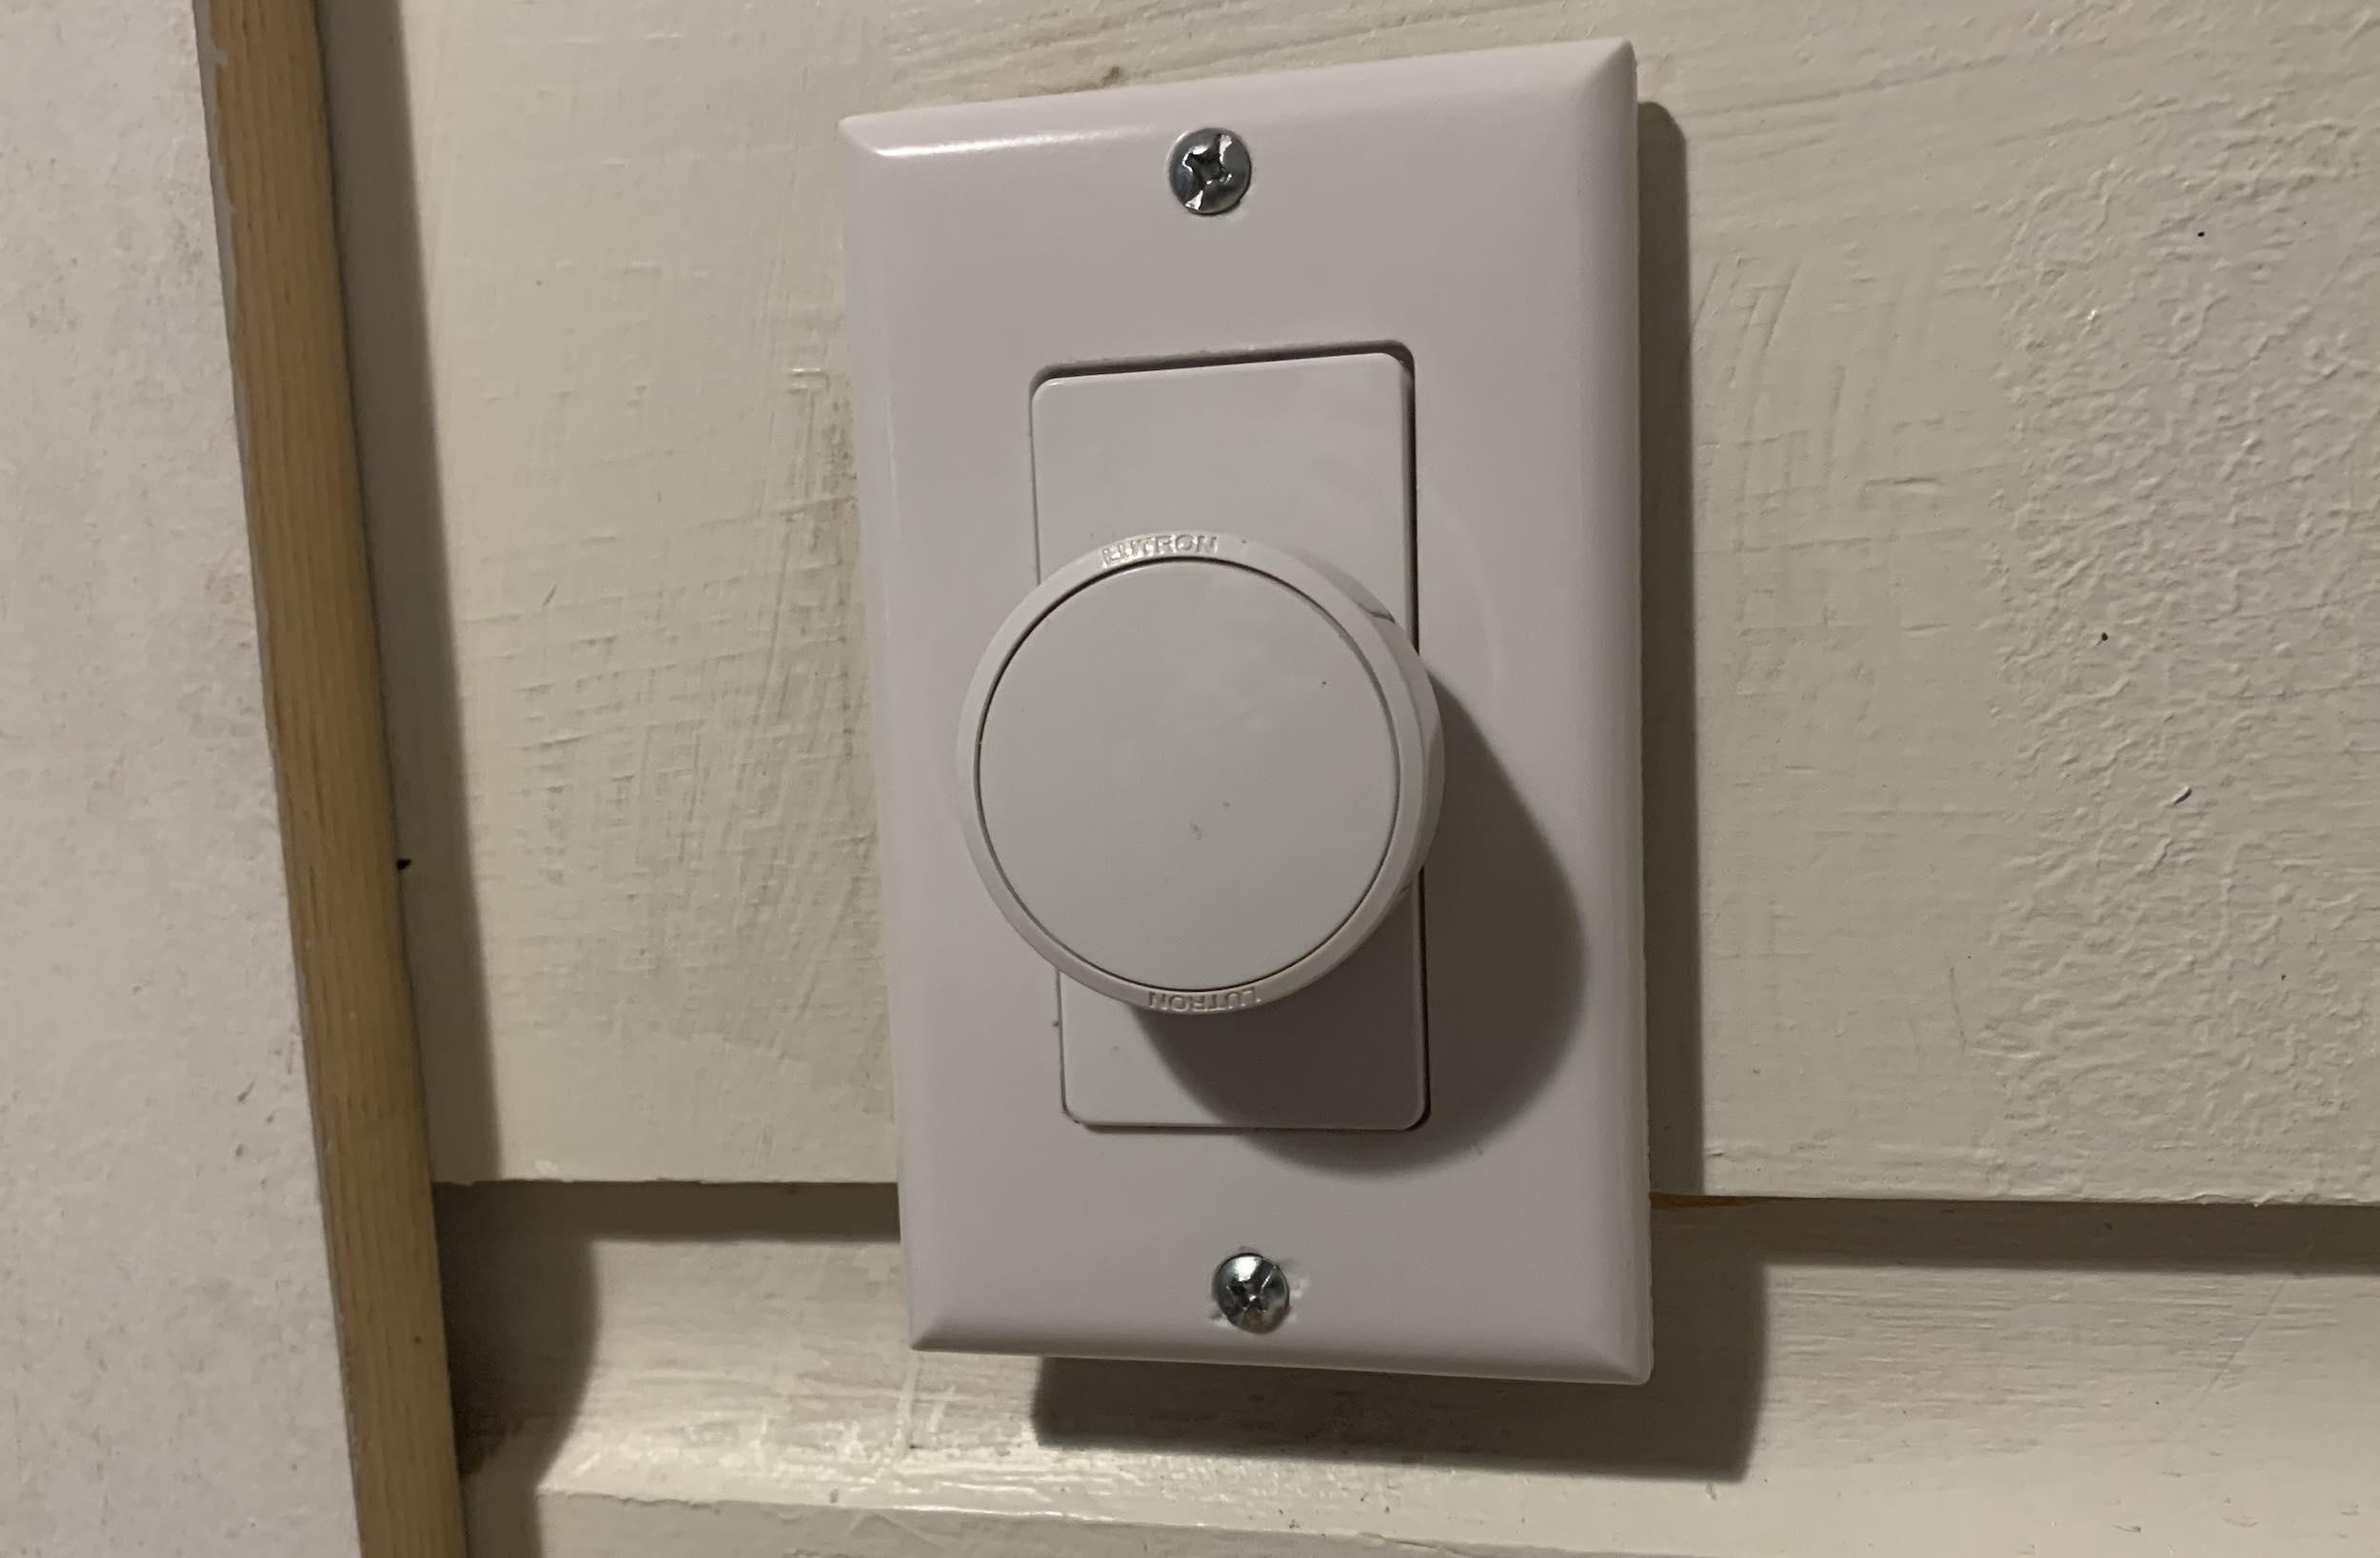 Lufton Aurora Smart Bulb Dimmer Switch review